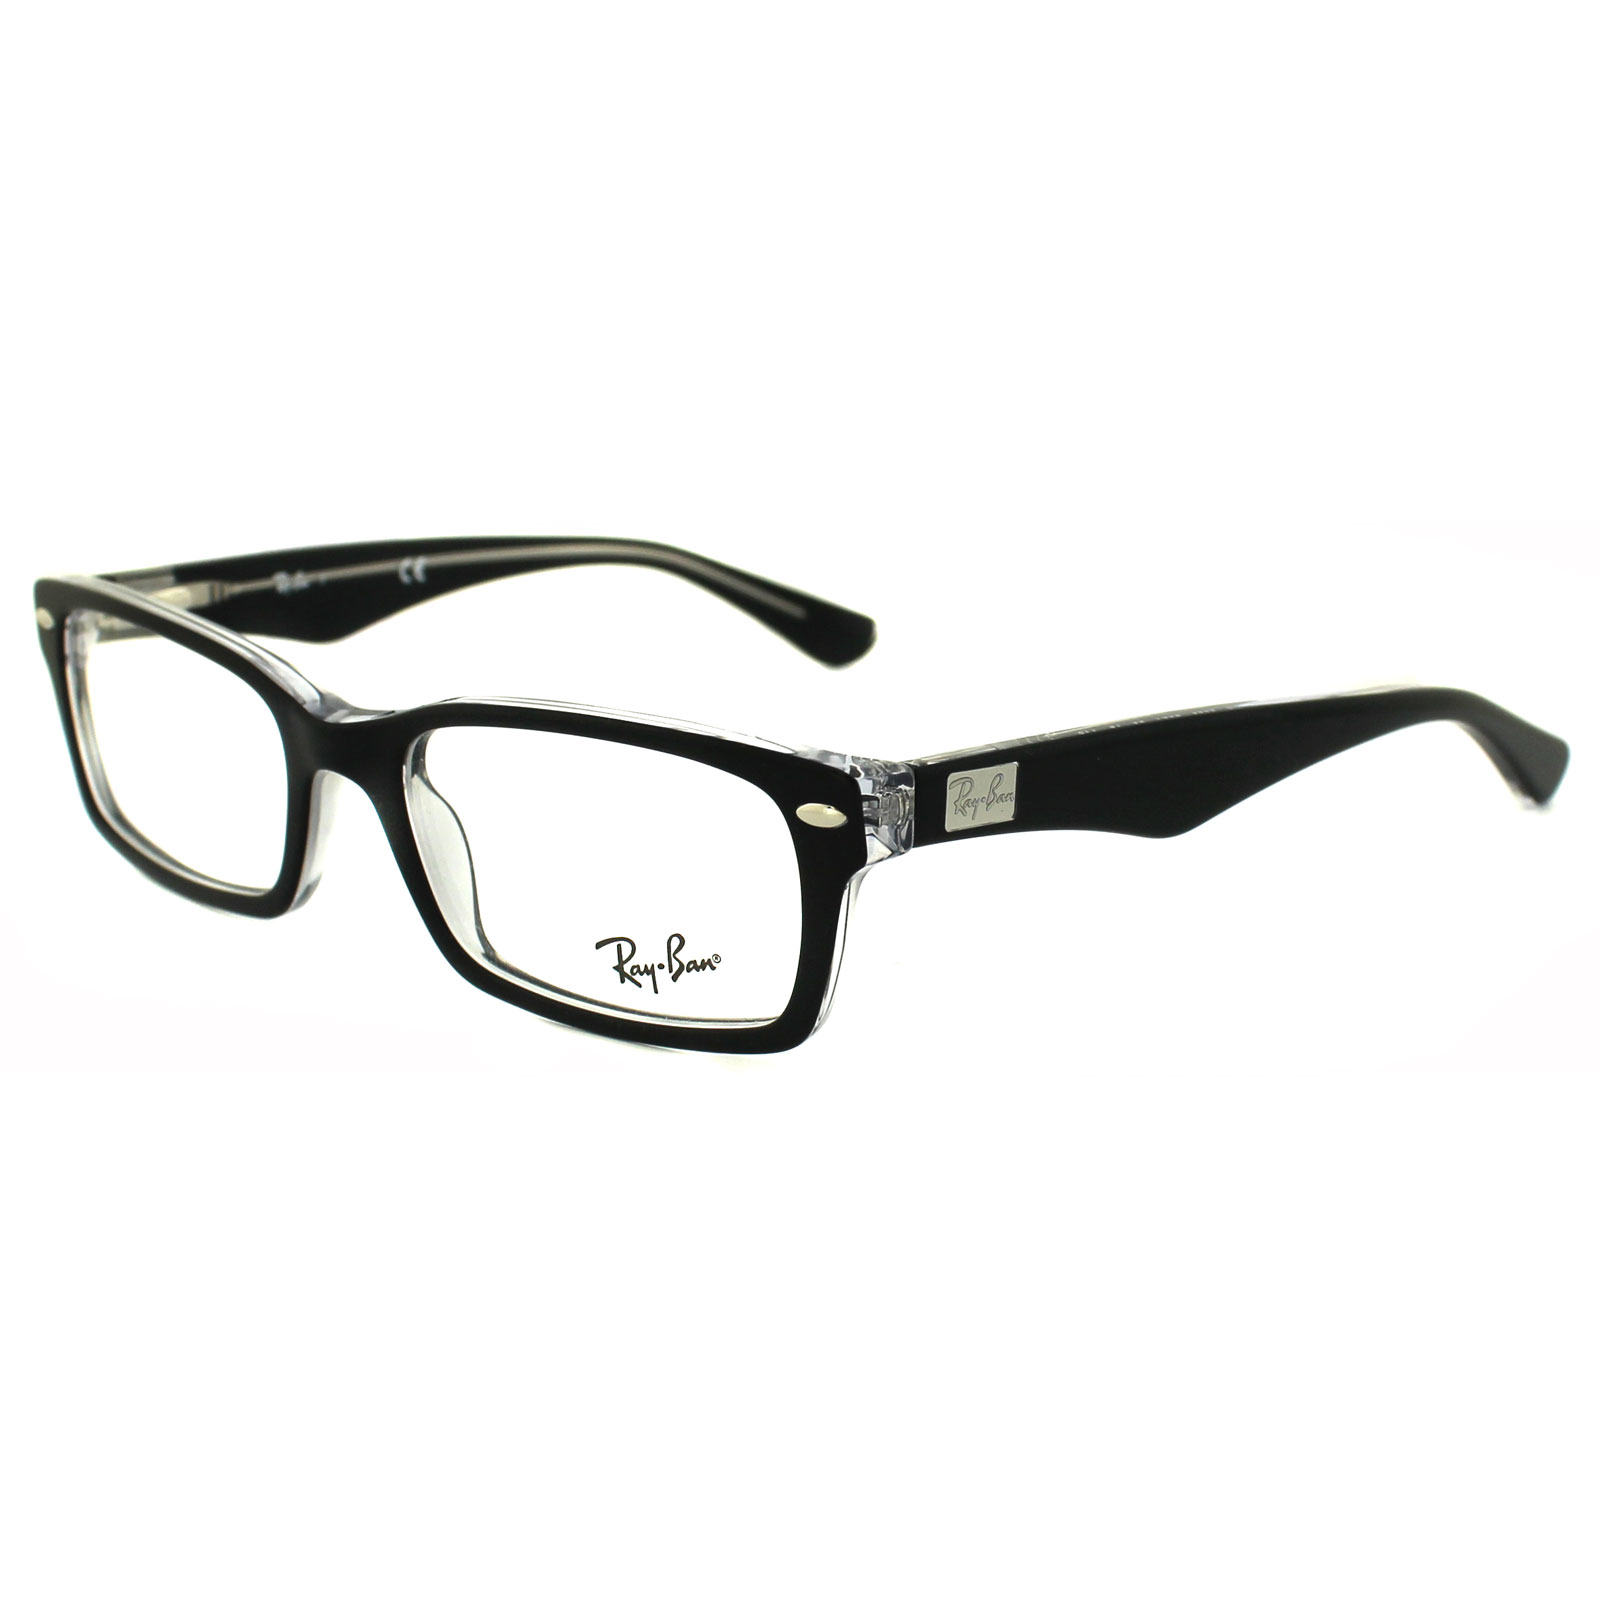 Ray-Ban Glasses Frames 5206 2034 Top Black on Transparent 52mm ...